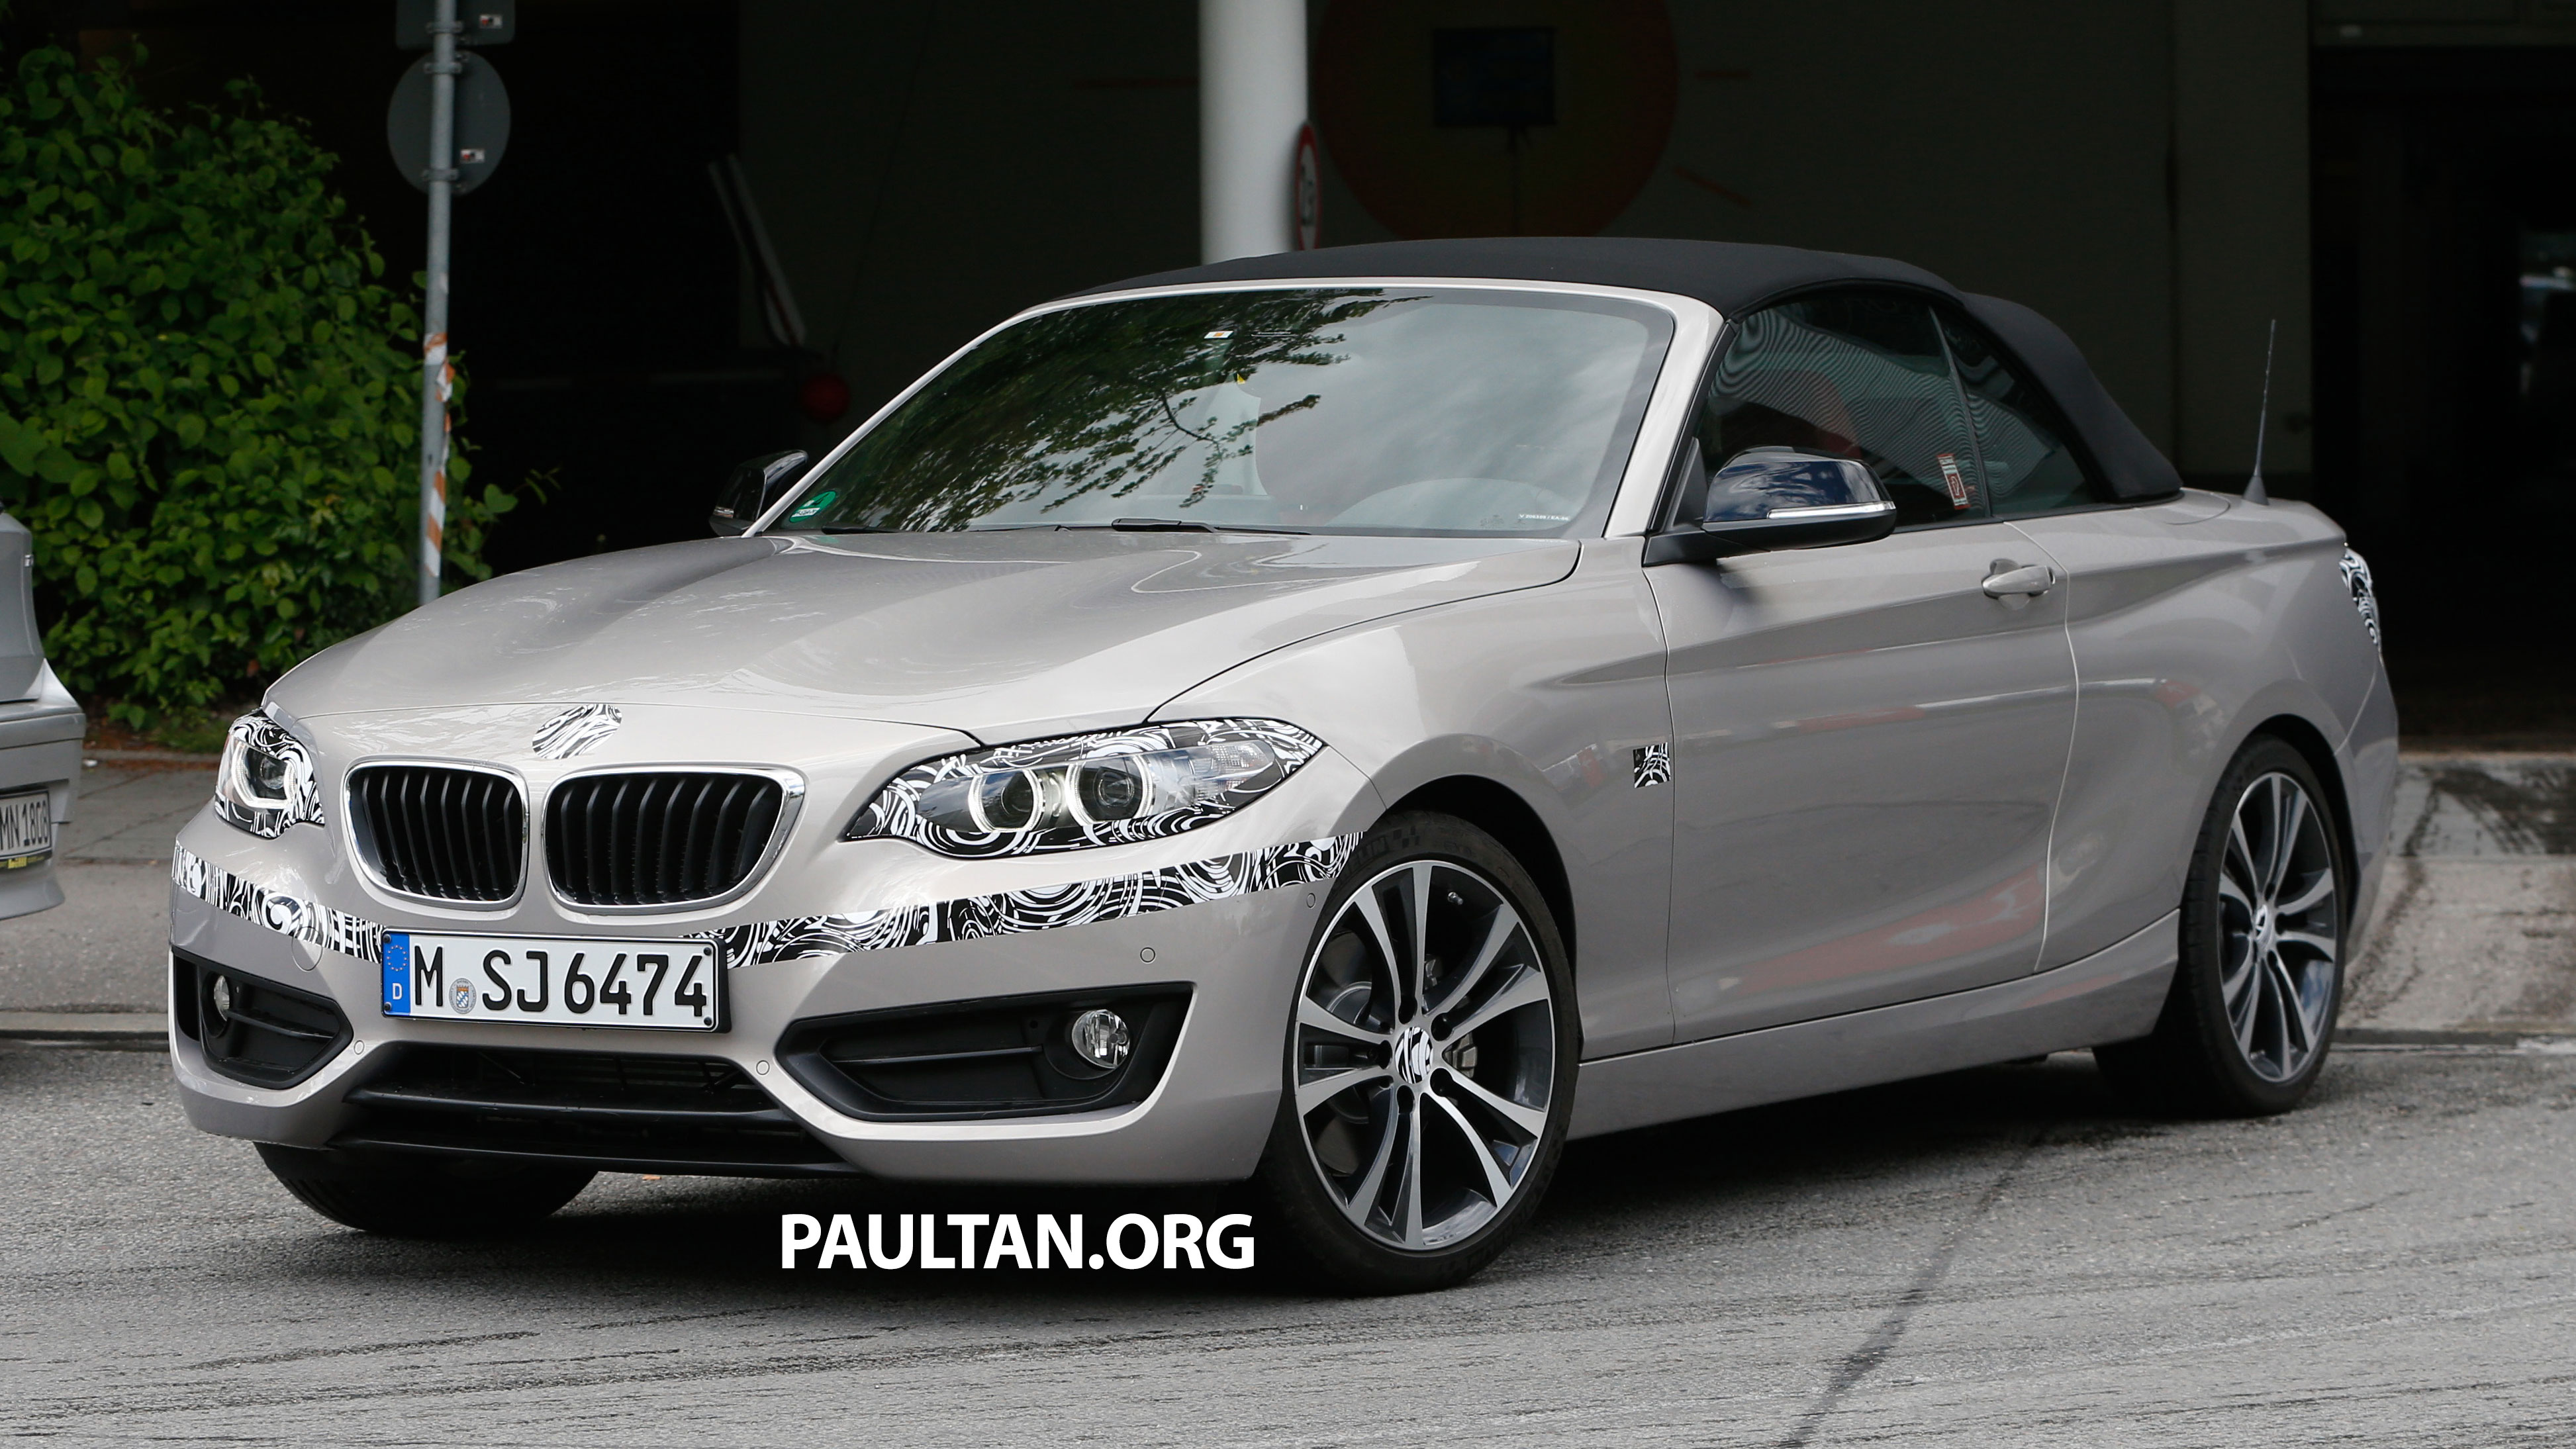 BMW 2-Series Cabriolet spied nearly undisguised Paul Tan ...